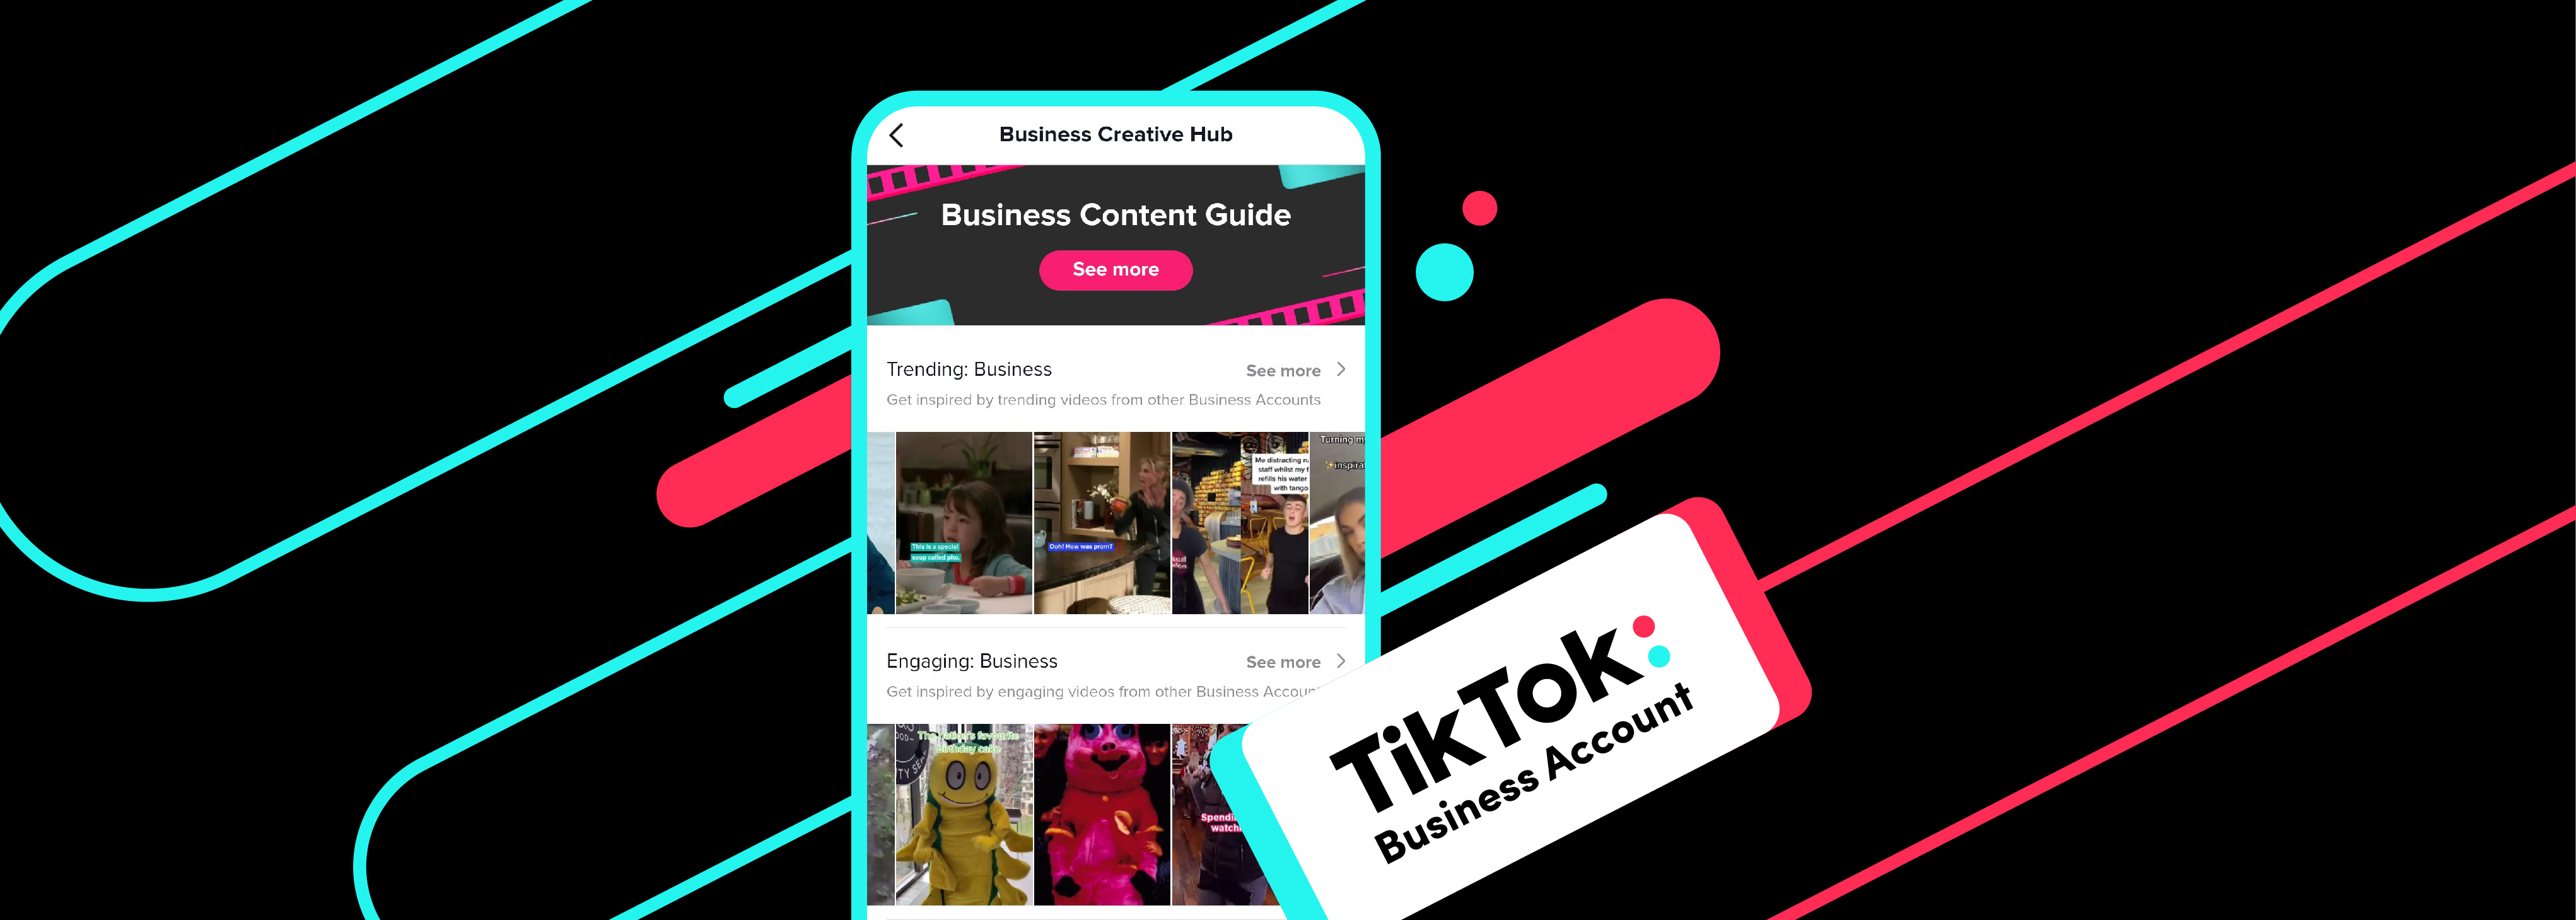 Introducing Business Creative Hub: Content inspiration at your fingertips |  TikTok For Business 博客